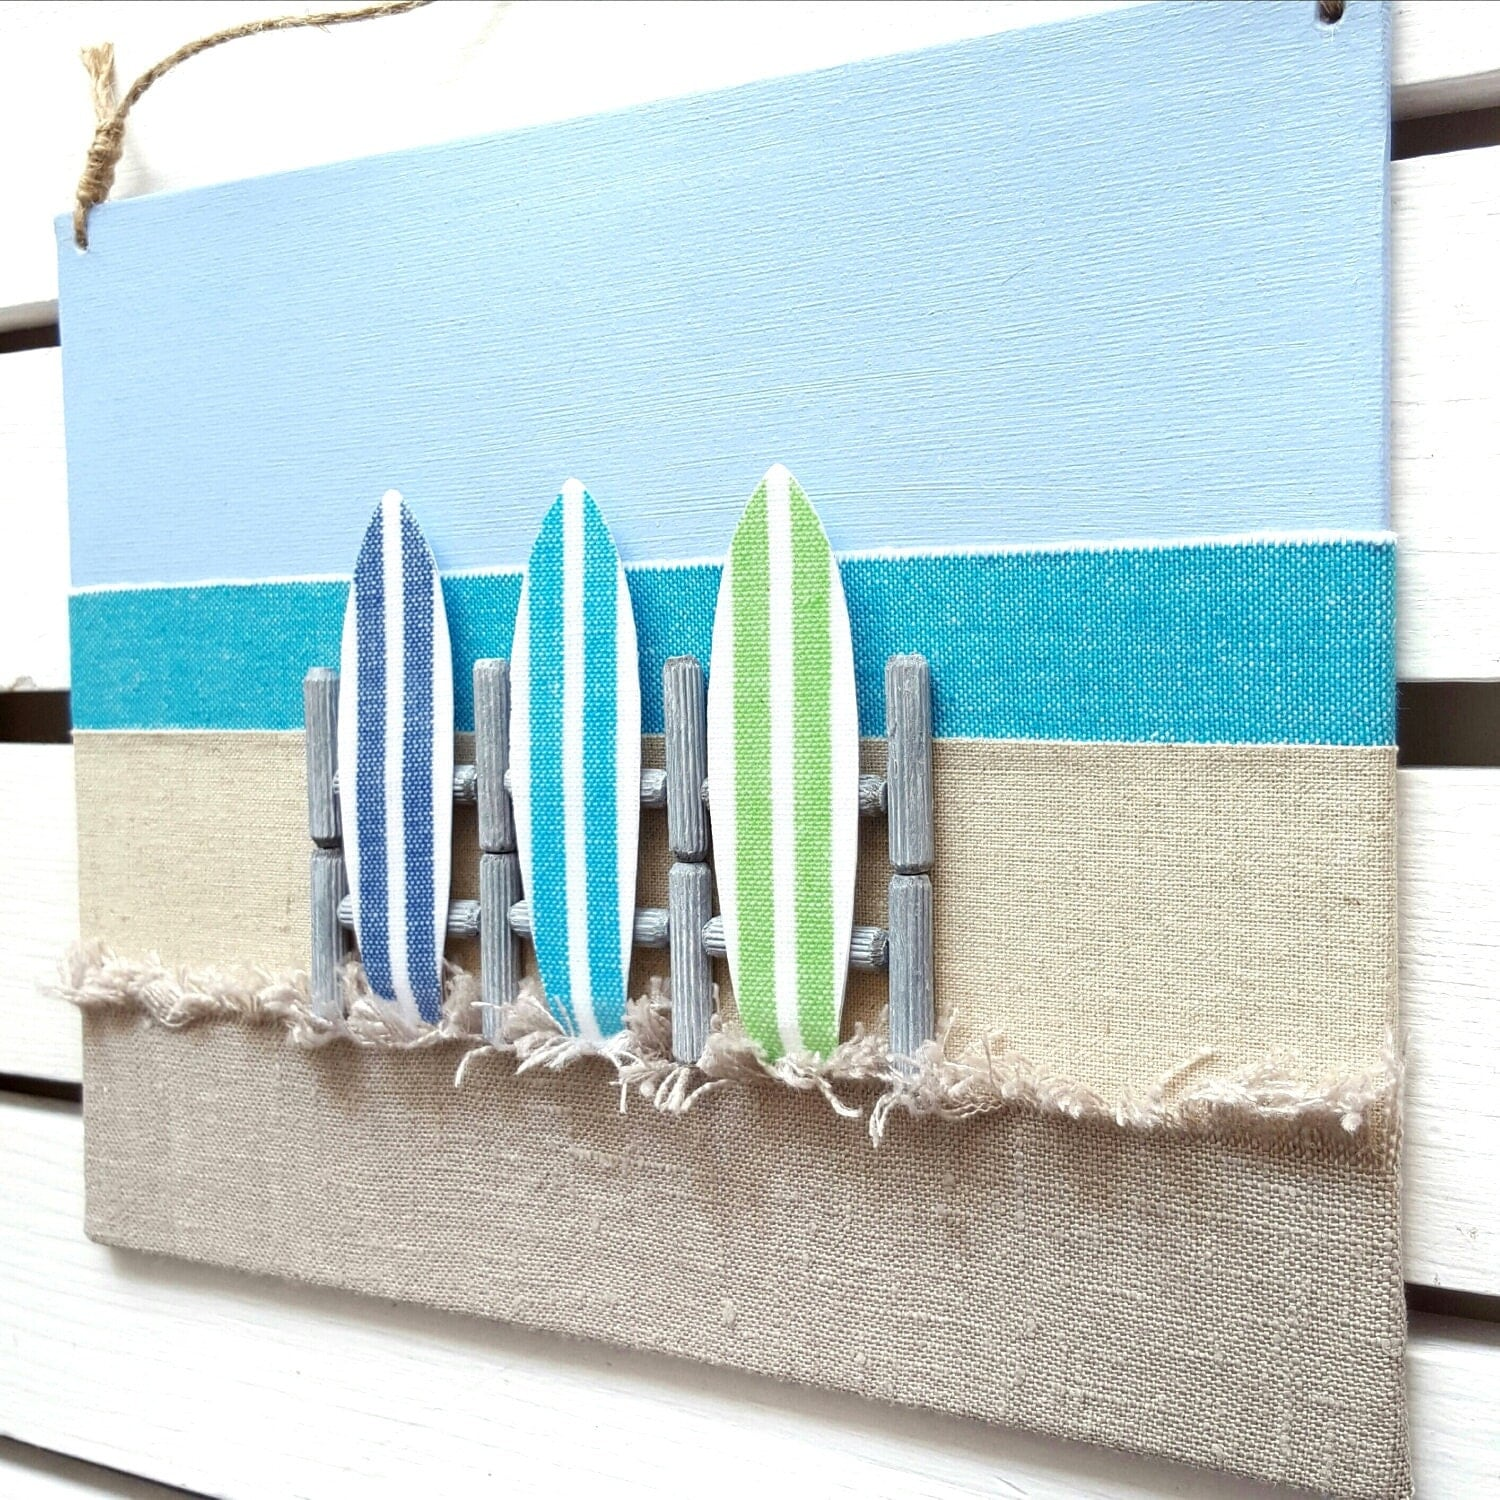 Surf decor surfboard decor 3d surf board wall decor surf Decorating items shop near me